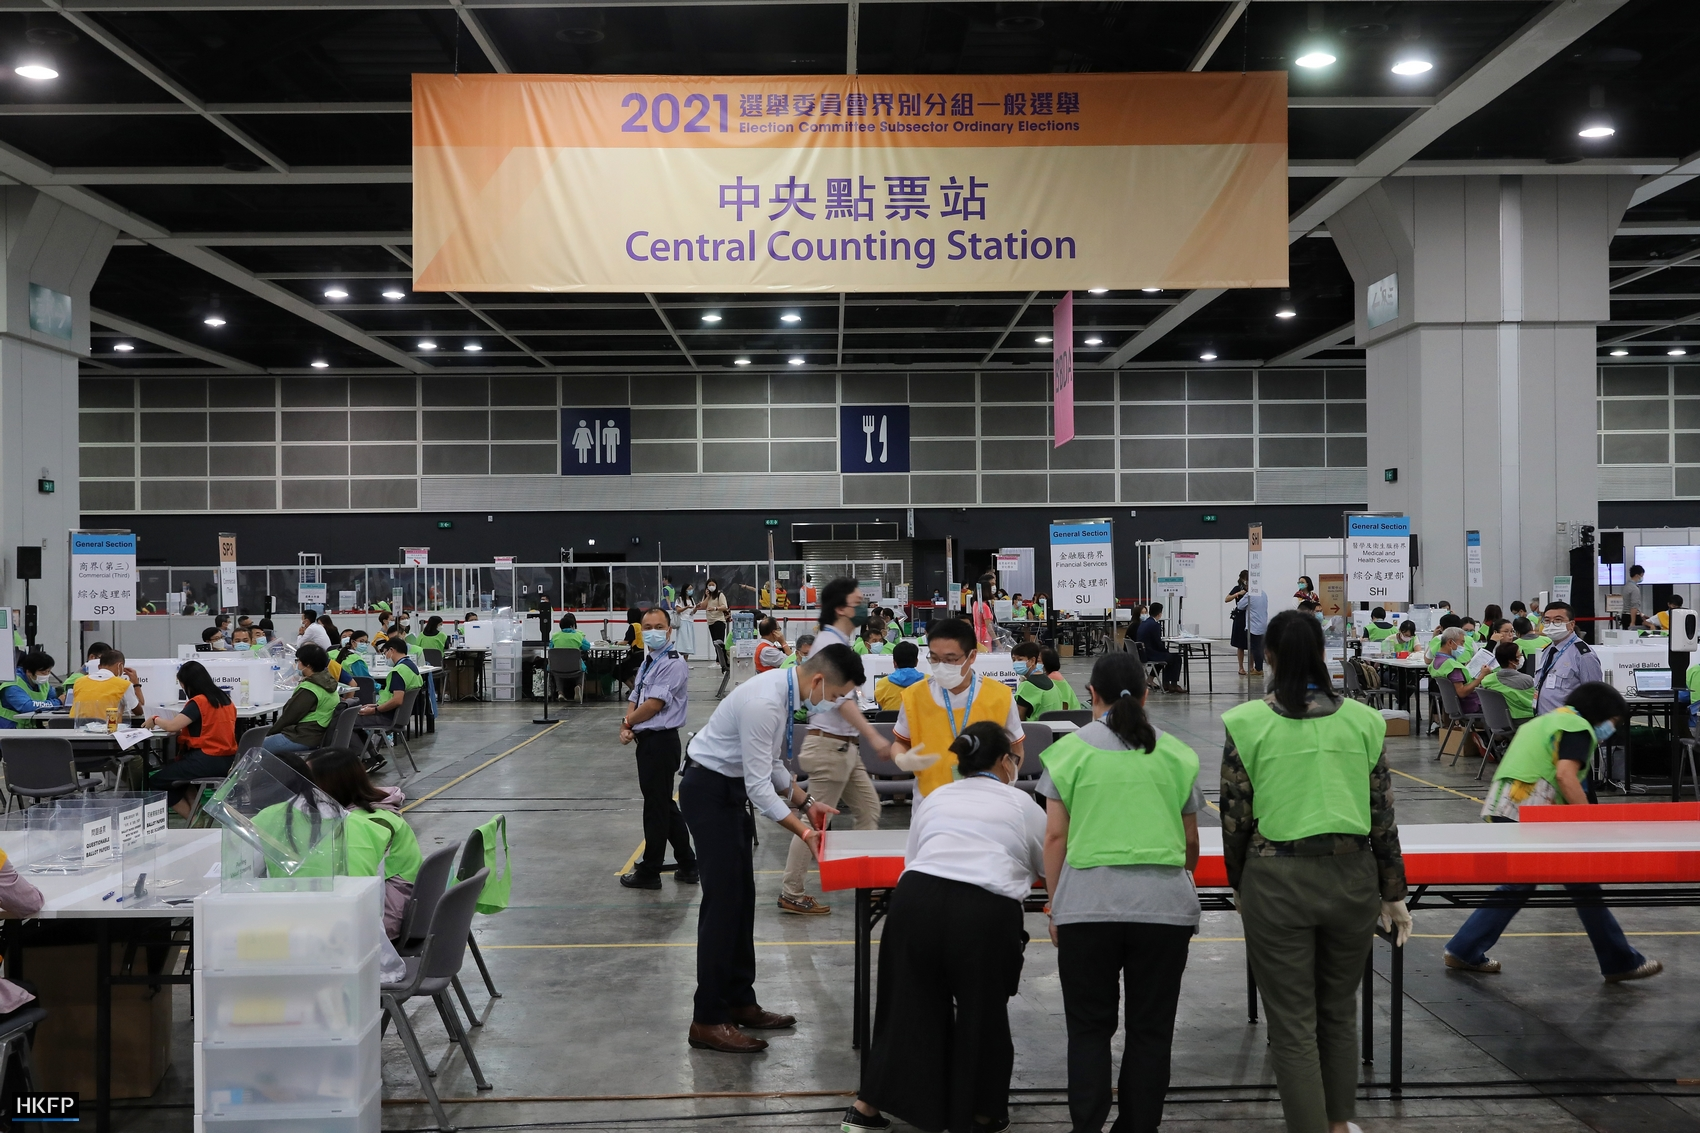 election voting voters ballots polls election committee 2021 sept 19 central counting station